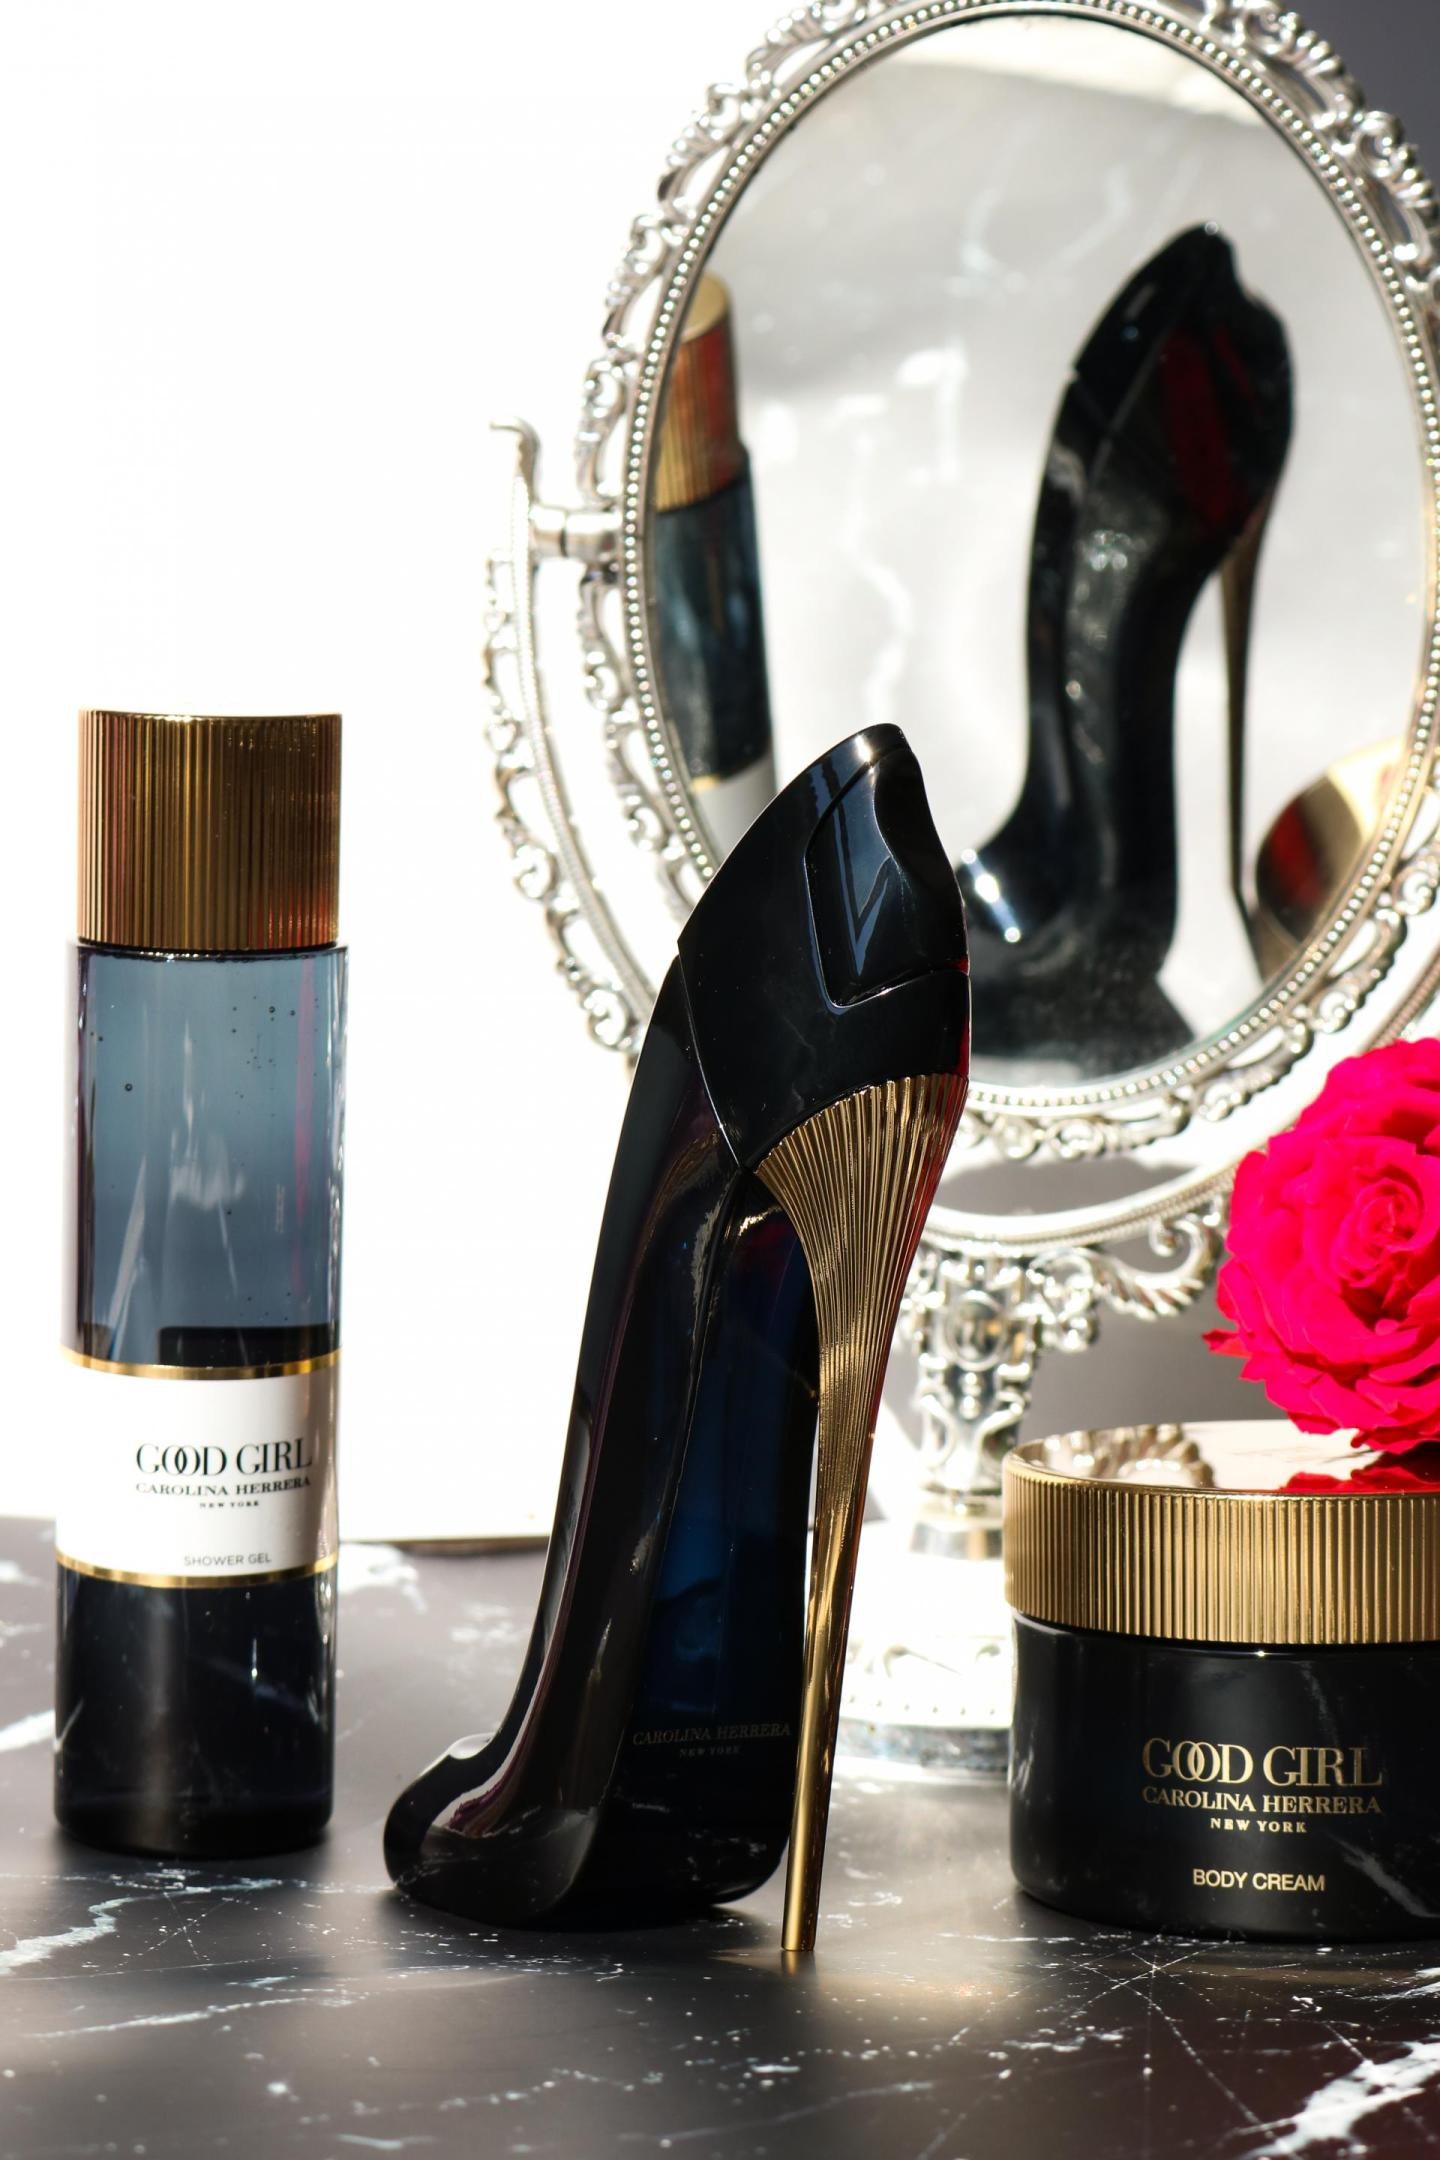 All the Good Girl products from Carolina Herrera